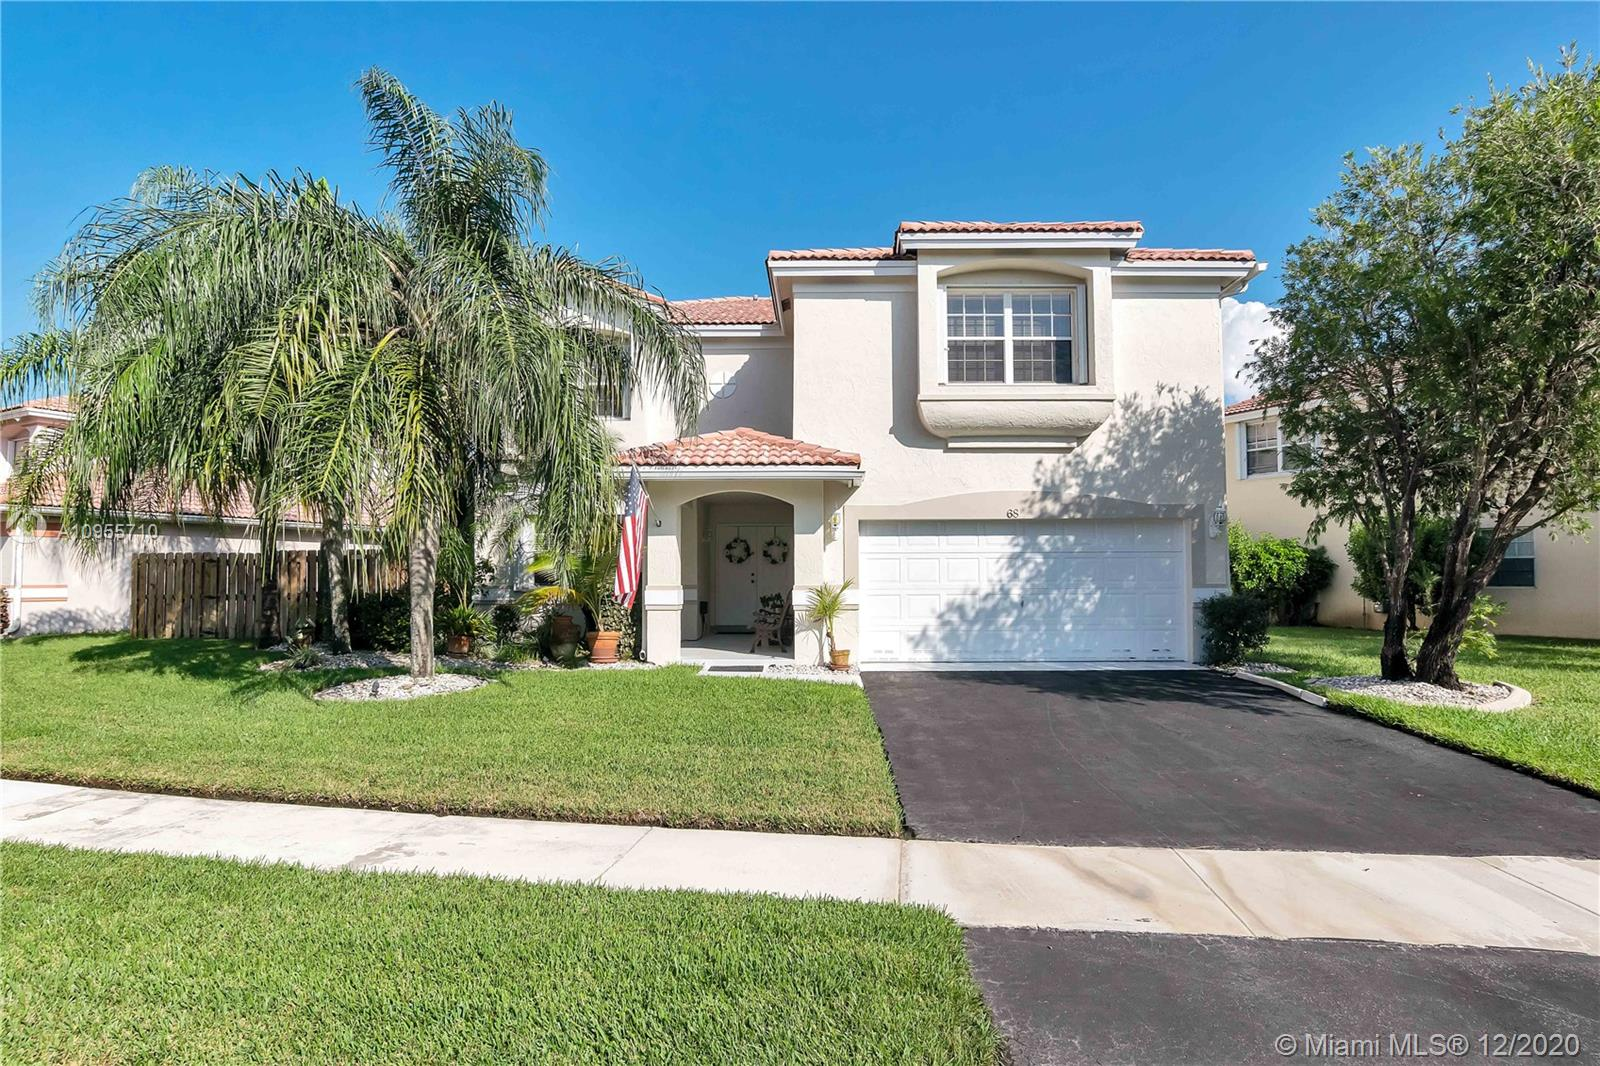 Beautiful 4/2.5 Two Story Home in The Gables at Bonaventure. Home Features an open, split Floor Plan. Knockdown Ceilings throughout the house. Painted Neutral Colors in social areas. Huge Master Bedroom w/Walk-in Closets, Master Bath separate Tub/Shower. Double Door Entrance. LED Lights. Gas Connection. Attic with plywood for storage. Good size Family Room and separate dining area. Tile Italian Rectificated 48x24. Enjoy and relax outside in the spacious covered patio, perfect for entertaining with Lakeview. Dark brown Motorized Pergola. Accordion Shutters. Enjoy the Bonaventure Town Center Club amenities: Gym, Pool, Tennis Courts, Billiards, Bowling, Theater, Game room & Skate Rink. Excellent neighborhood w/the best schools. Near Shopping Plazas, Restaurants & Highways. A must see home!